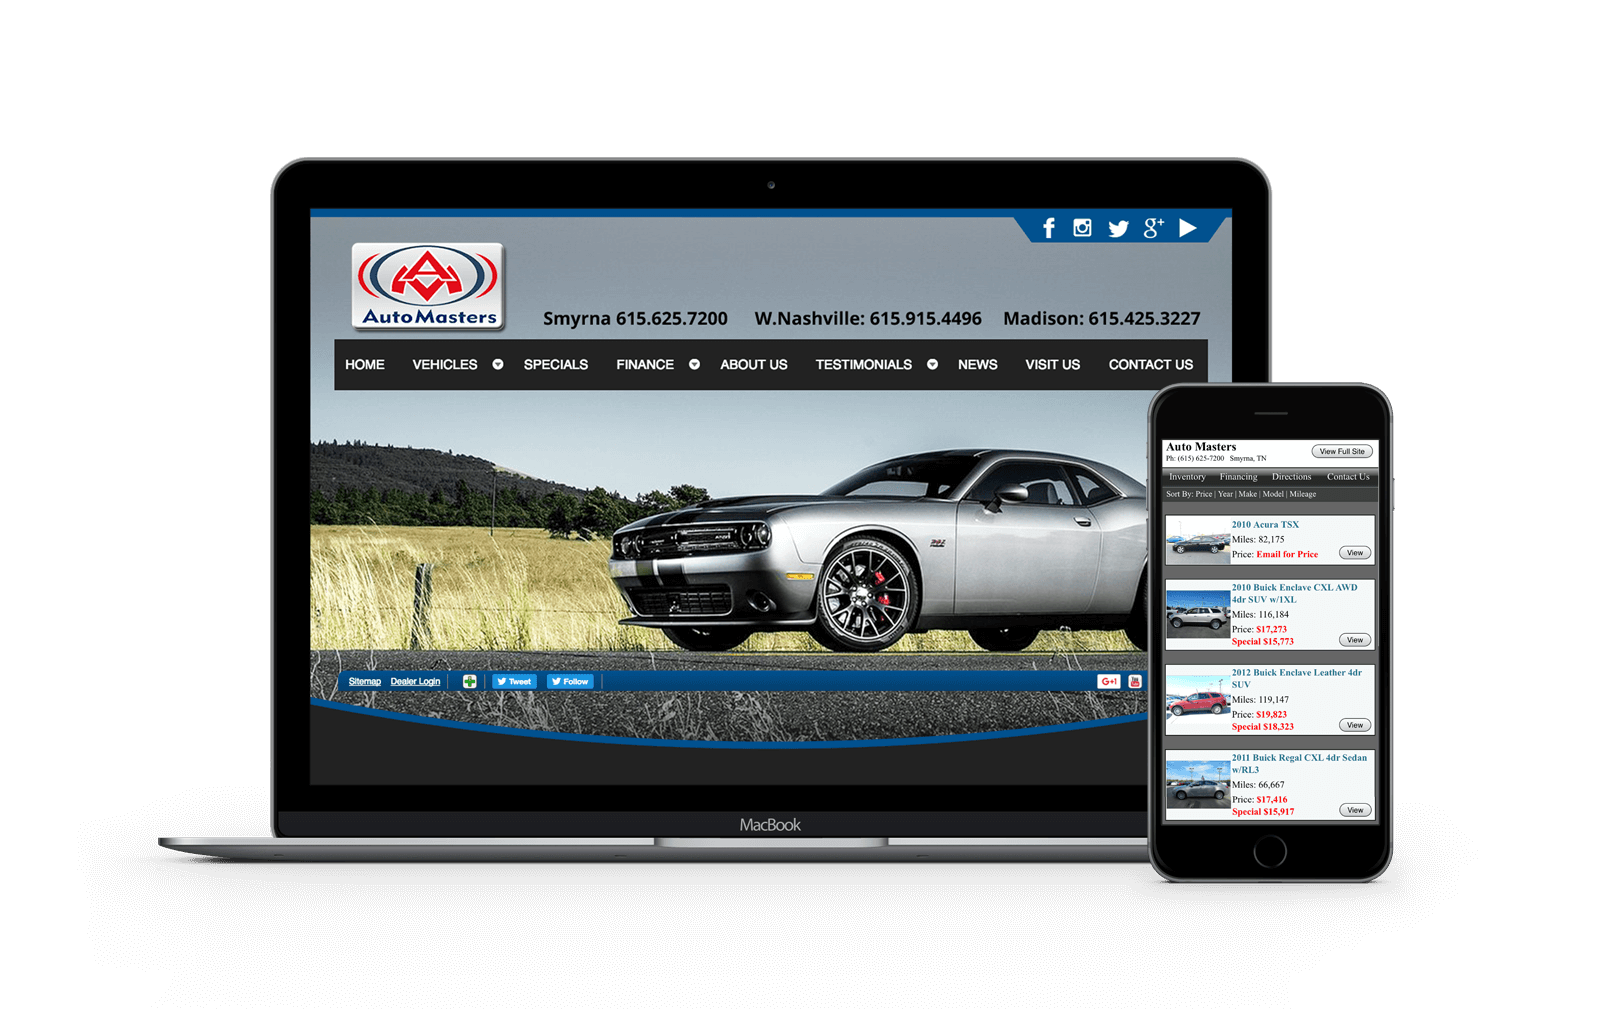 auto-masters-casestudy-mockup_1600px.png